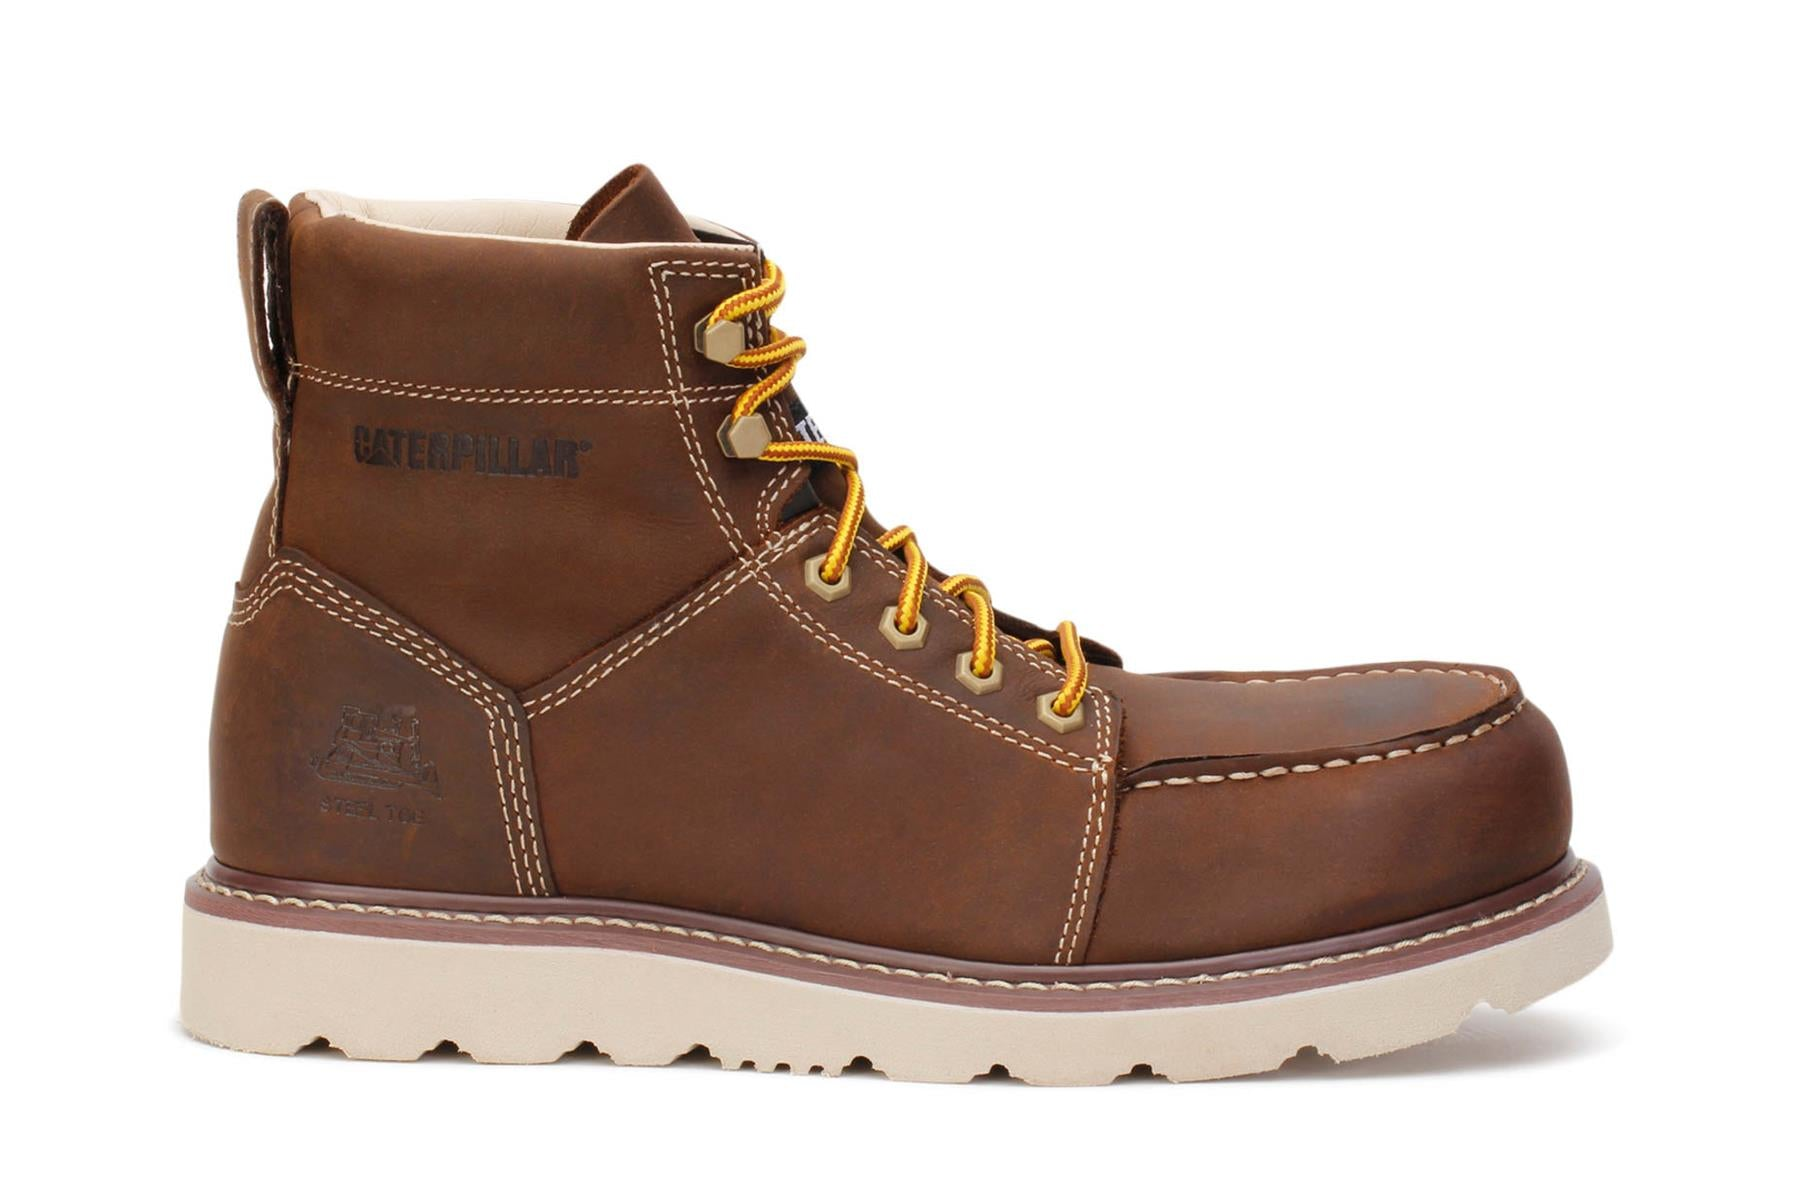 caterpillar-mens-tradesman-steel-toe-work-boots-chocolate-brown-p90888-main